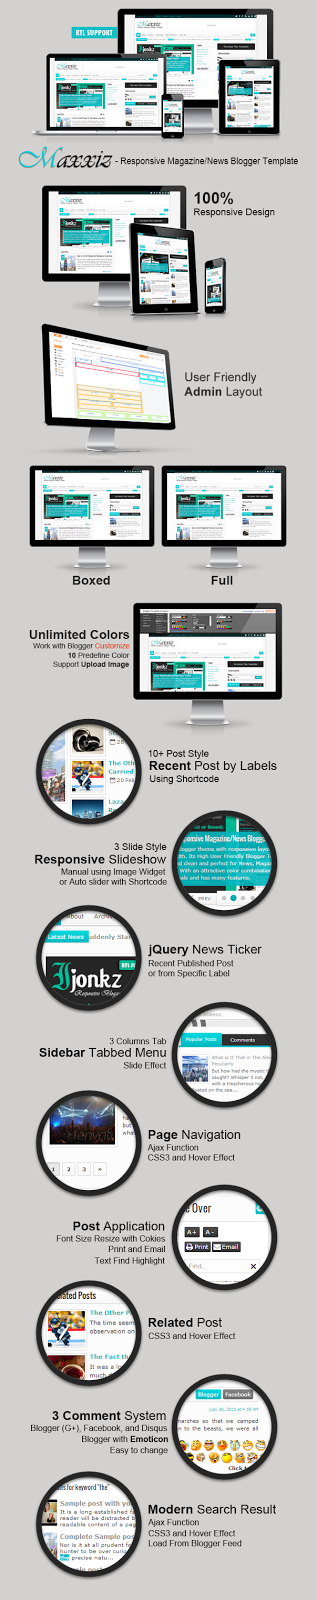 Maxxiz - Responsive Blogger Template Free download